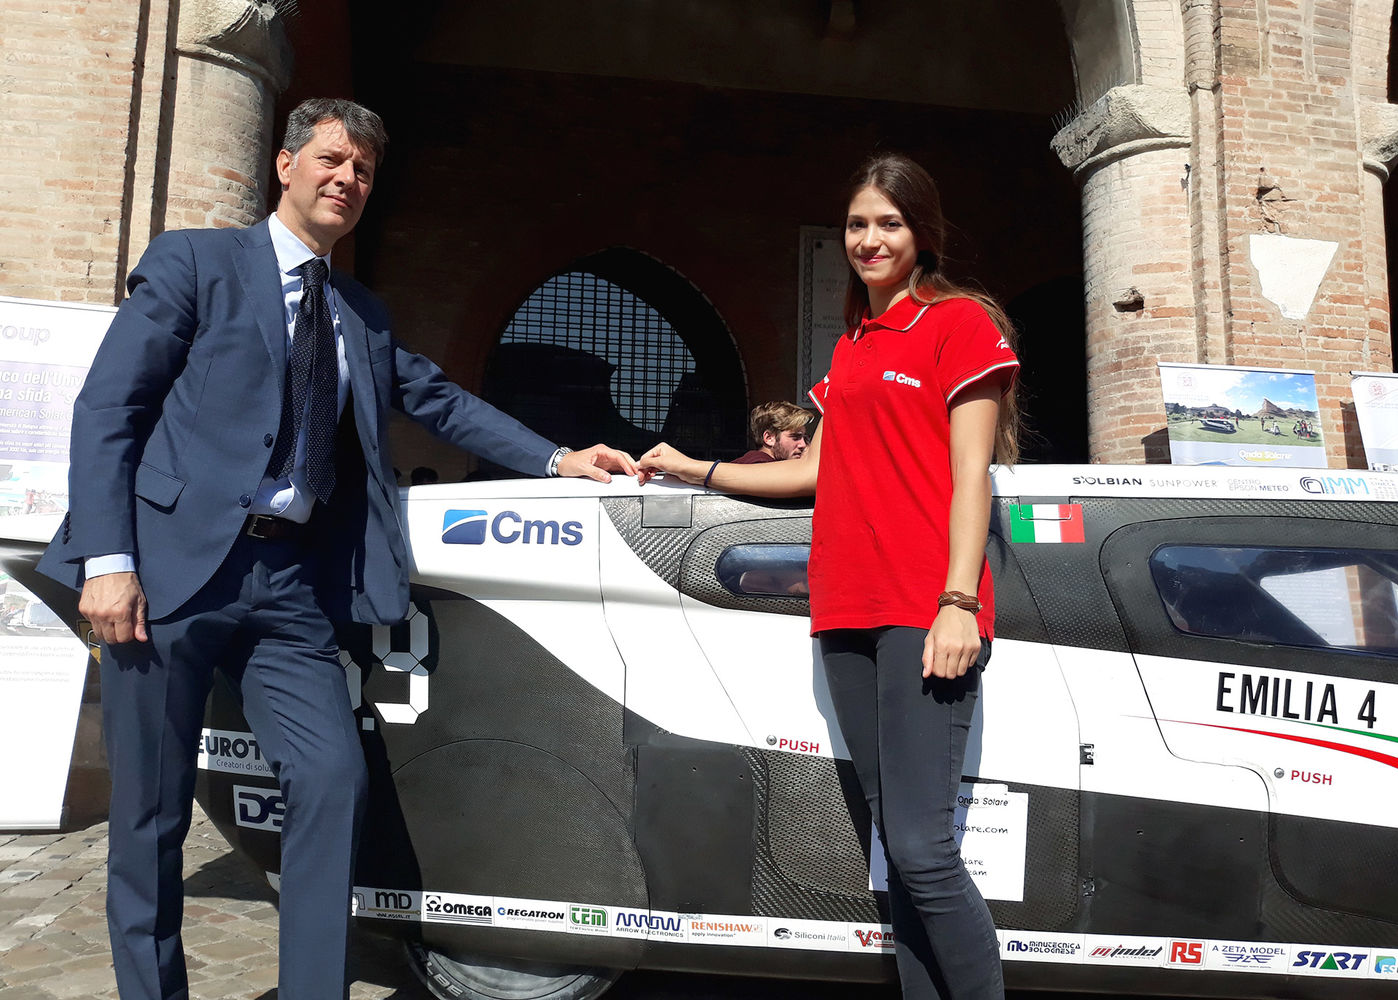 The solar powered car to arrive in Rimini